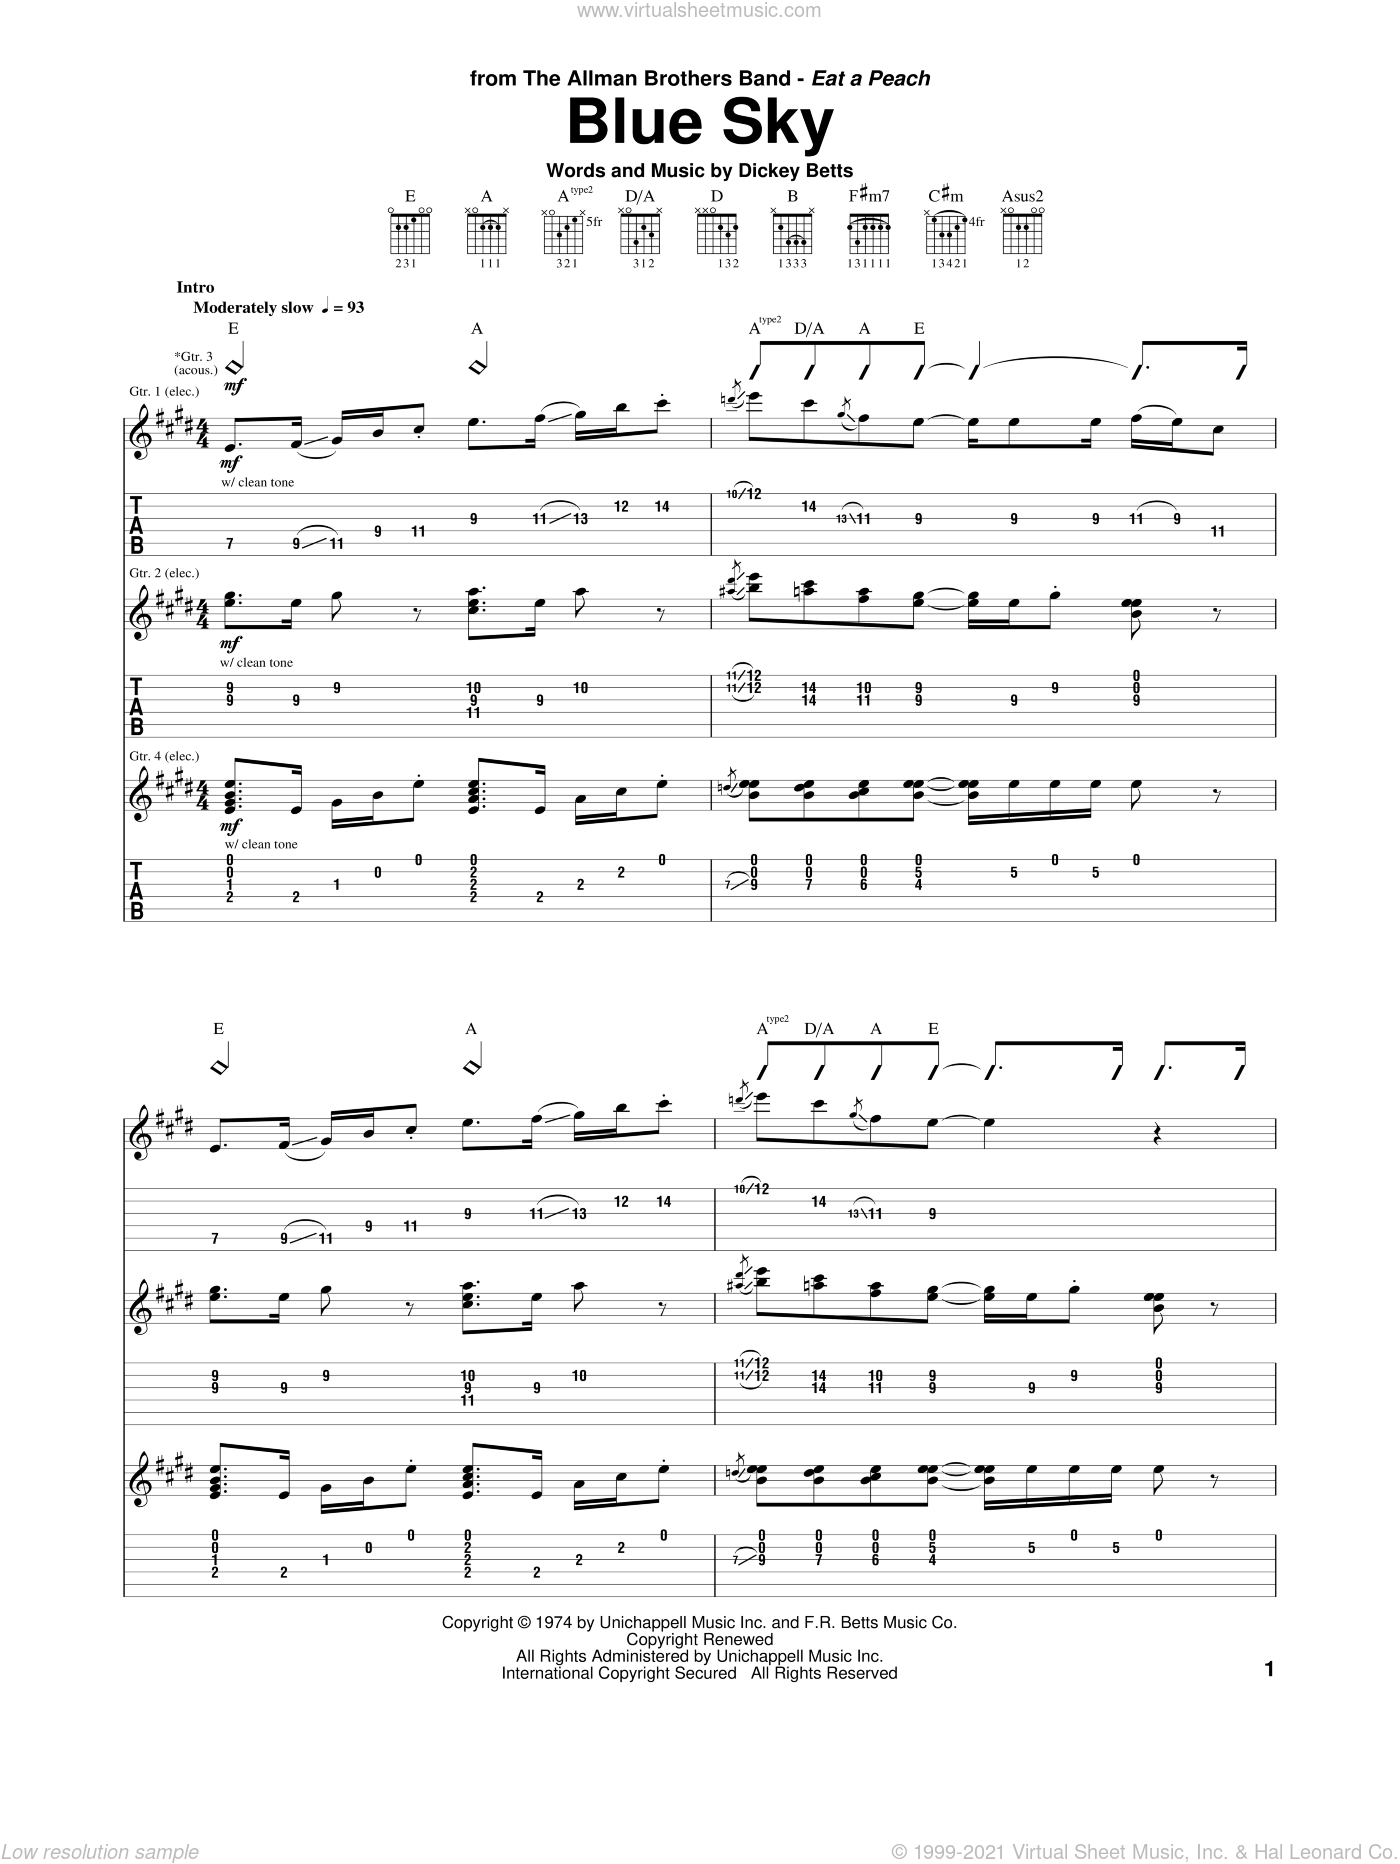 Blue Sky sheet music for guitar (tablature) by Allman Brothers Band, The Allman Brothers Band and Dickey Betts, intermediate skill level